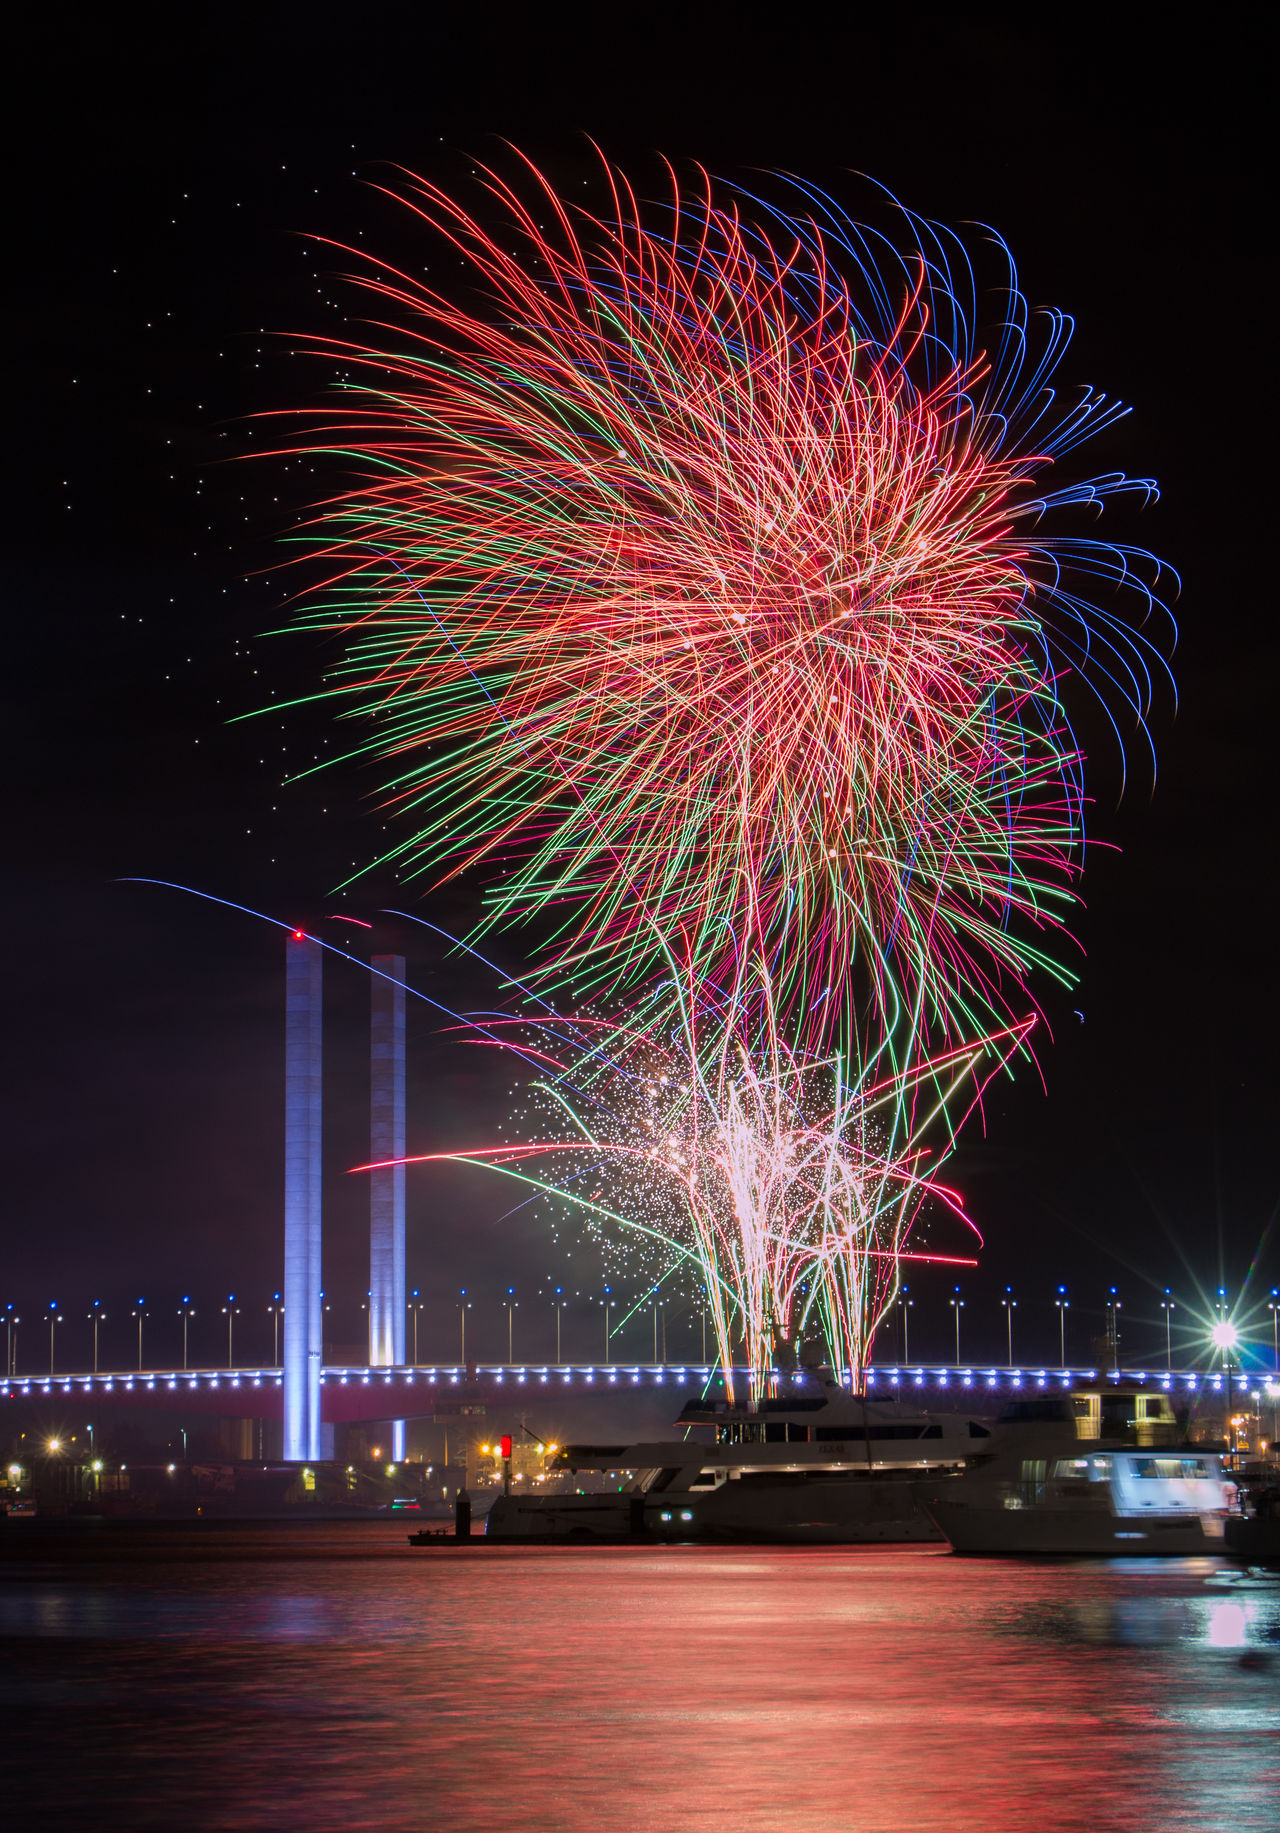 Time for Winter Fireworks again!! Winter Fireworks Docklands Docklands Fireworks Nightphotography Long Exposure Canon 70d Melbourne Australia Neighborhood Map